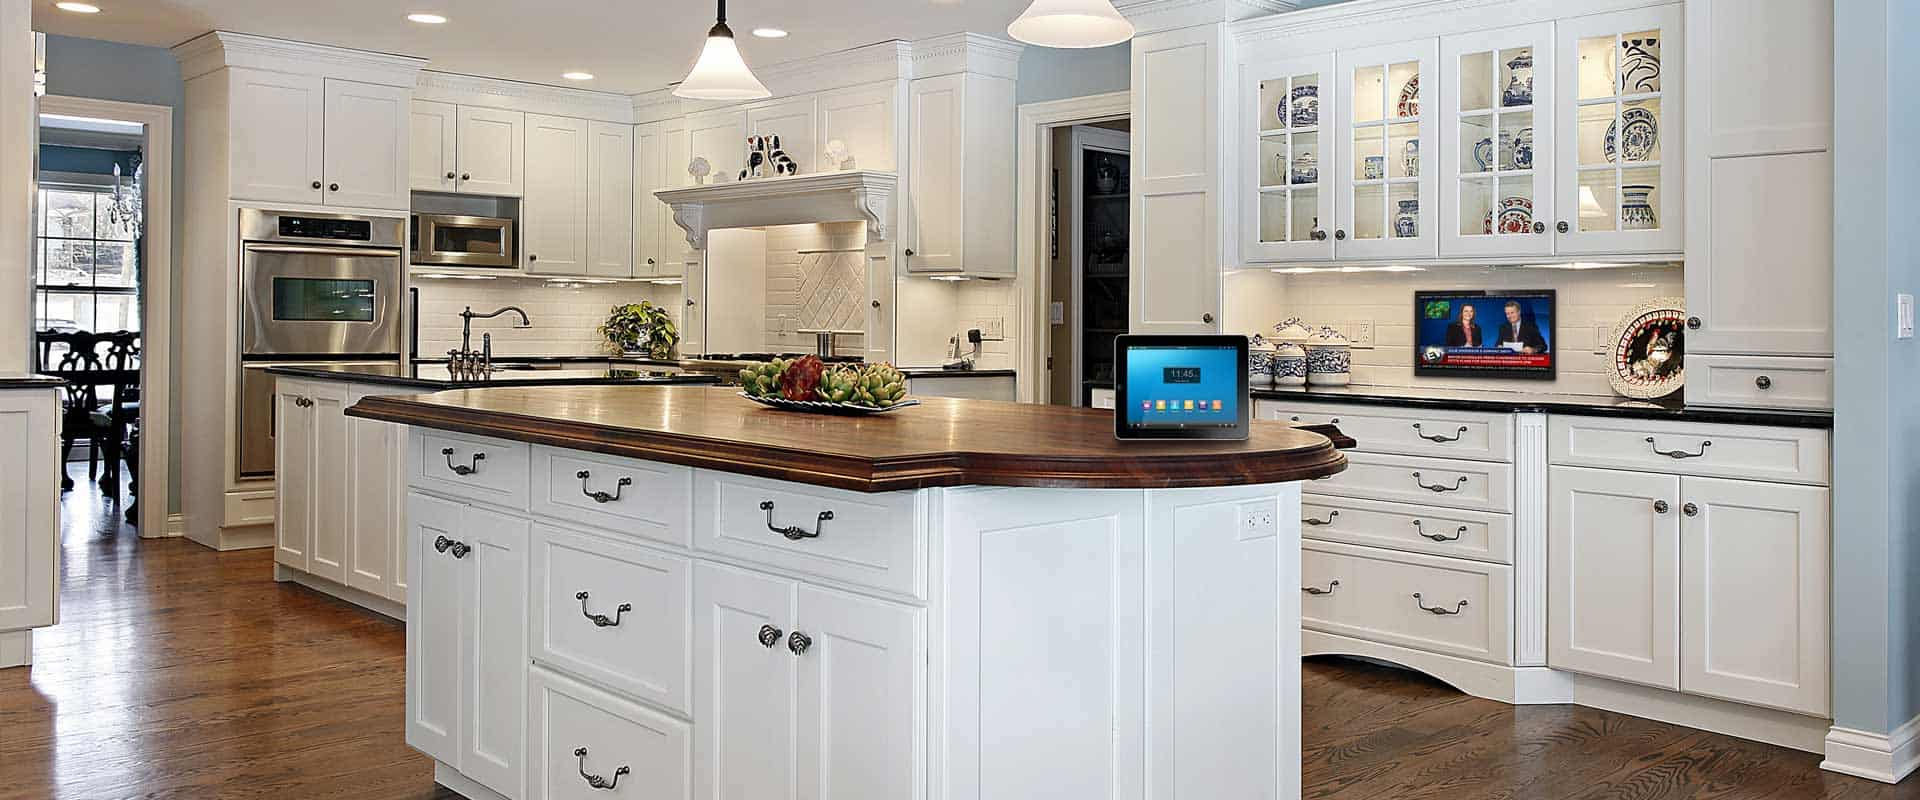 Crestron Home Automation Crestron Smart Home Systems